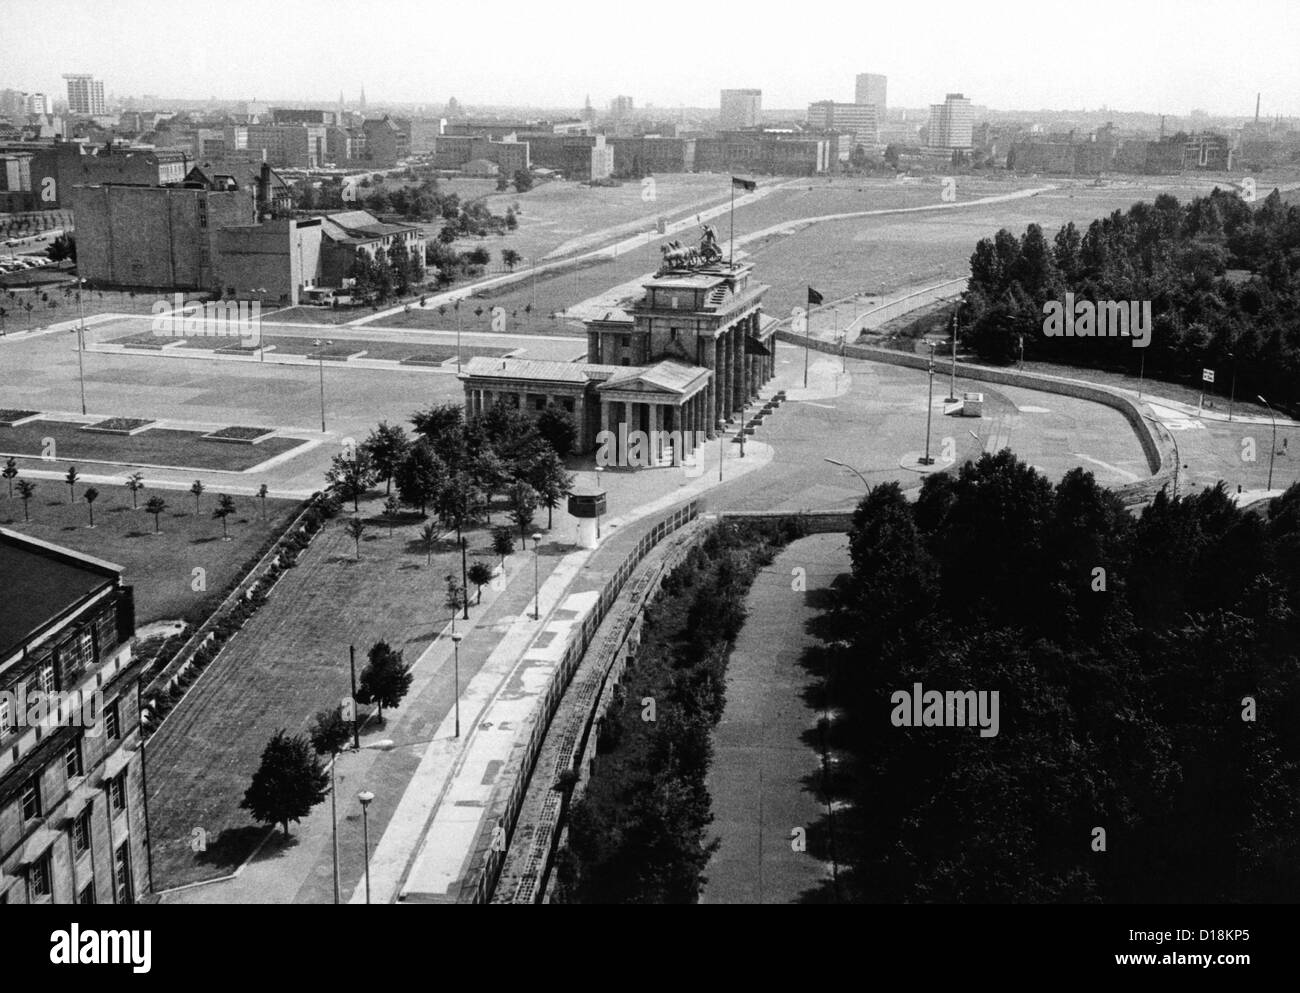 Aerial View Of Brandenberg Gate Where The Berlin Wall